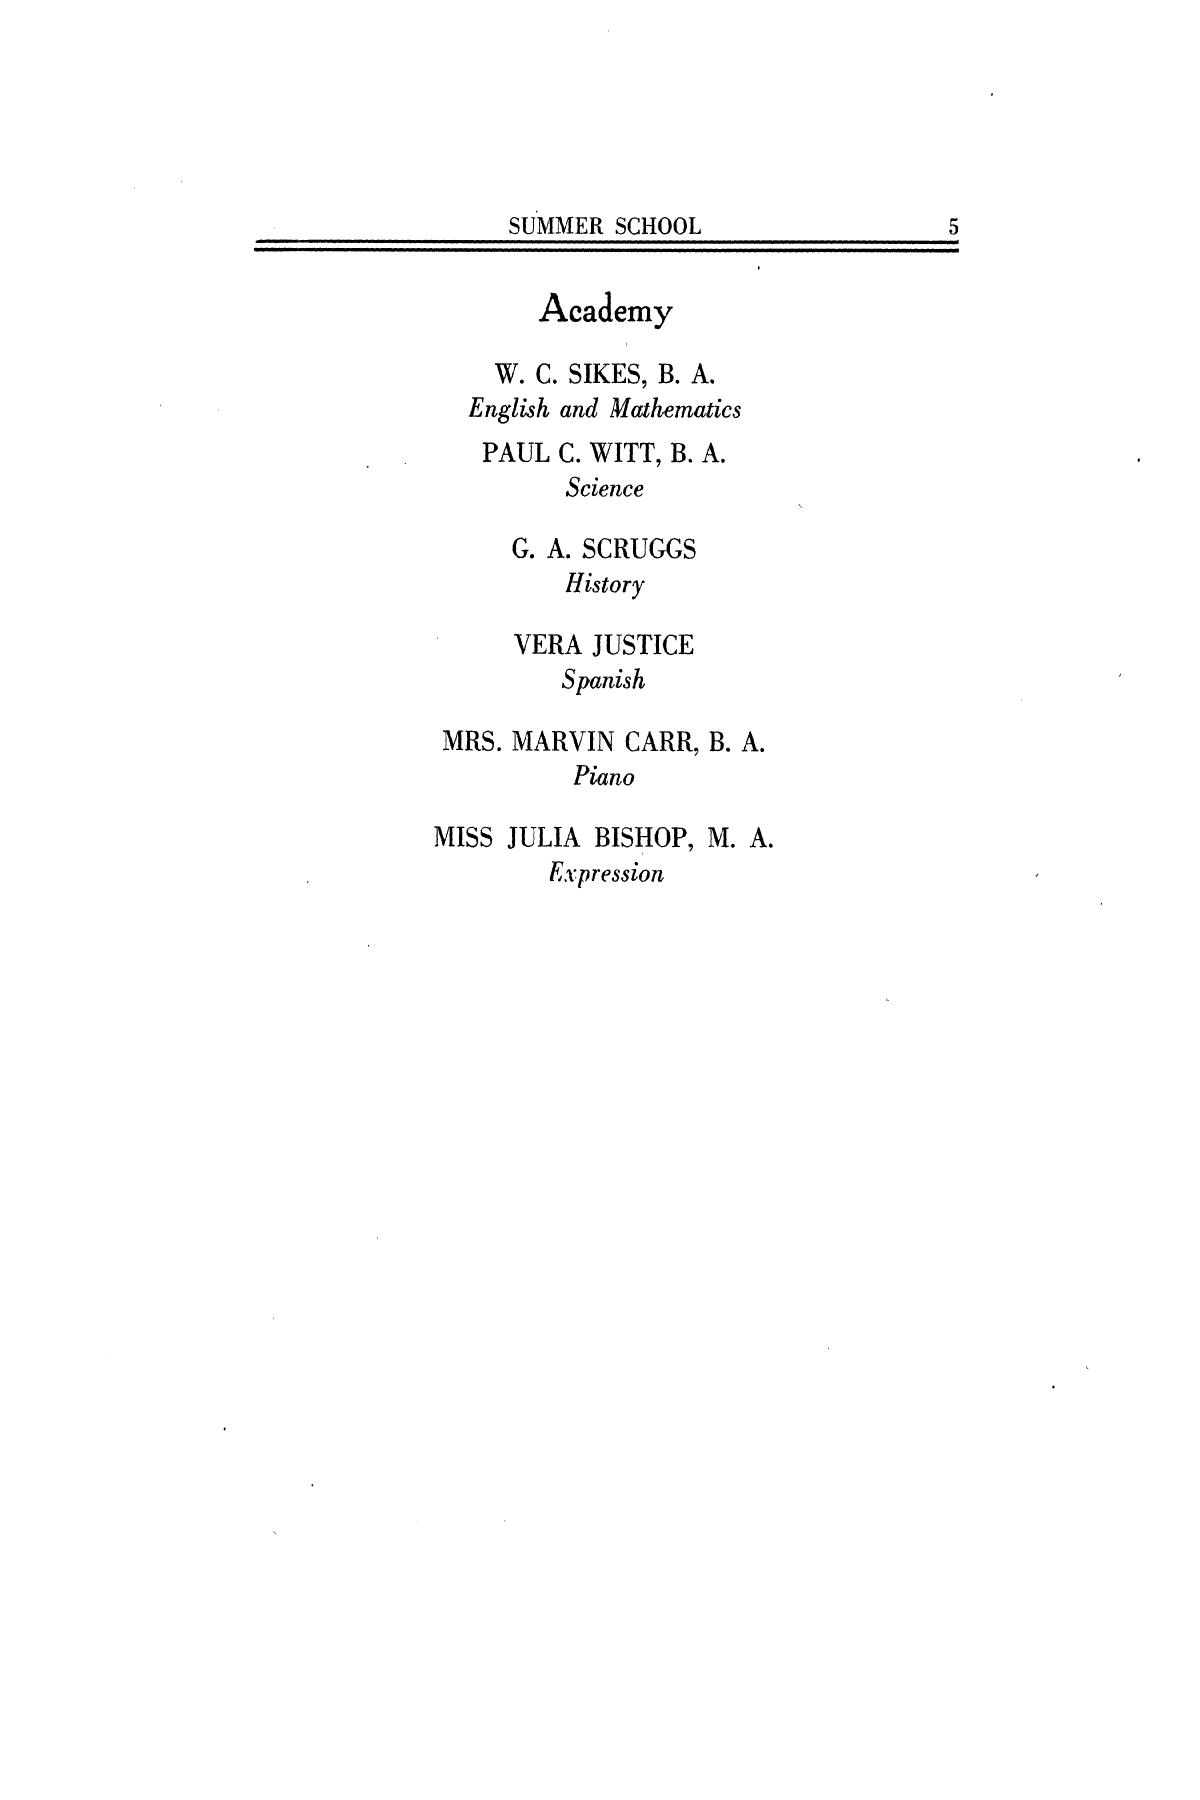 Catalog of Abilene Christian College, 1926                                                                                                      5